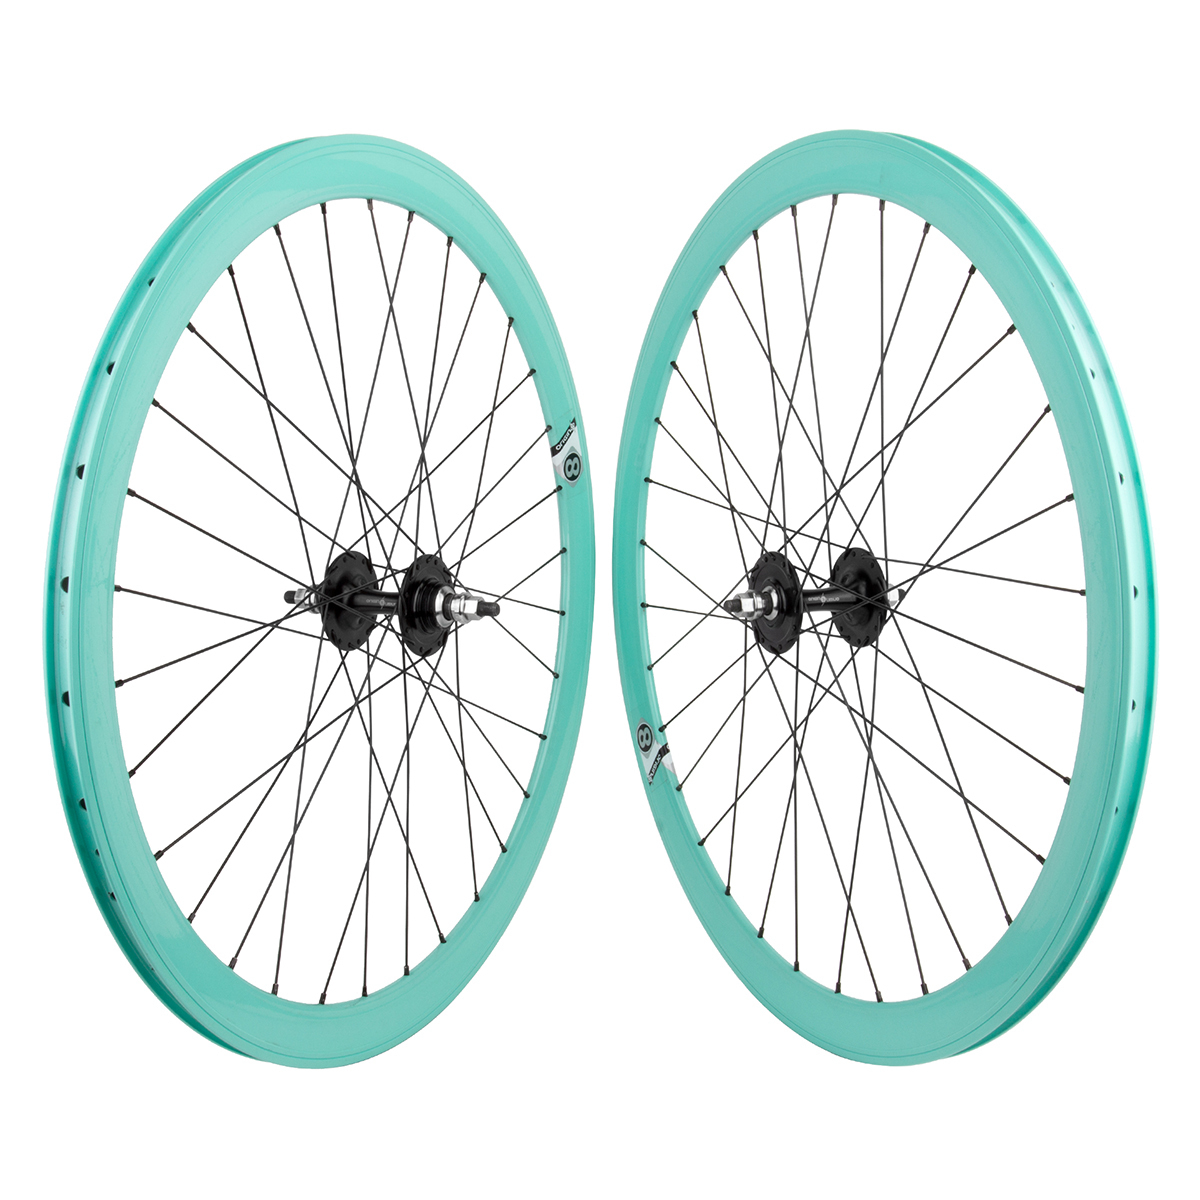 Origin8 TA42 700c Bike Wheelset Teal NMSW FX/FX Loose Hub